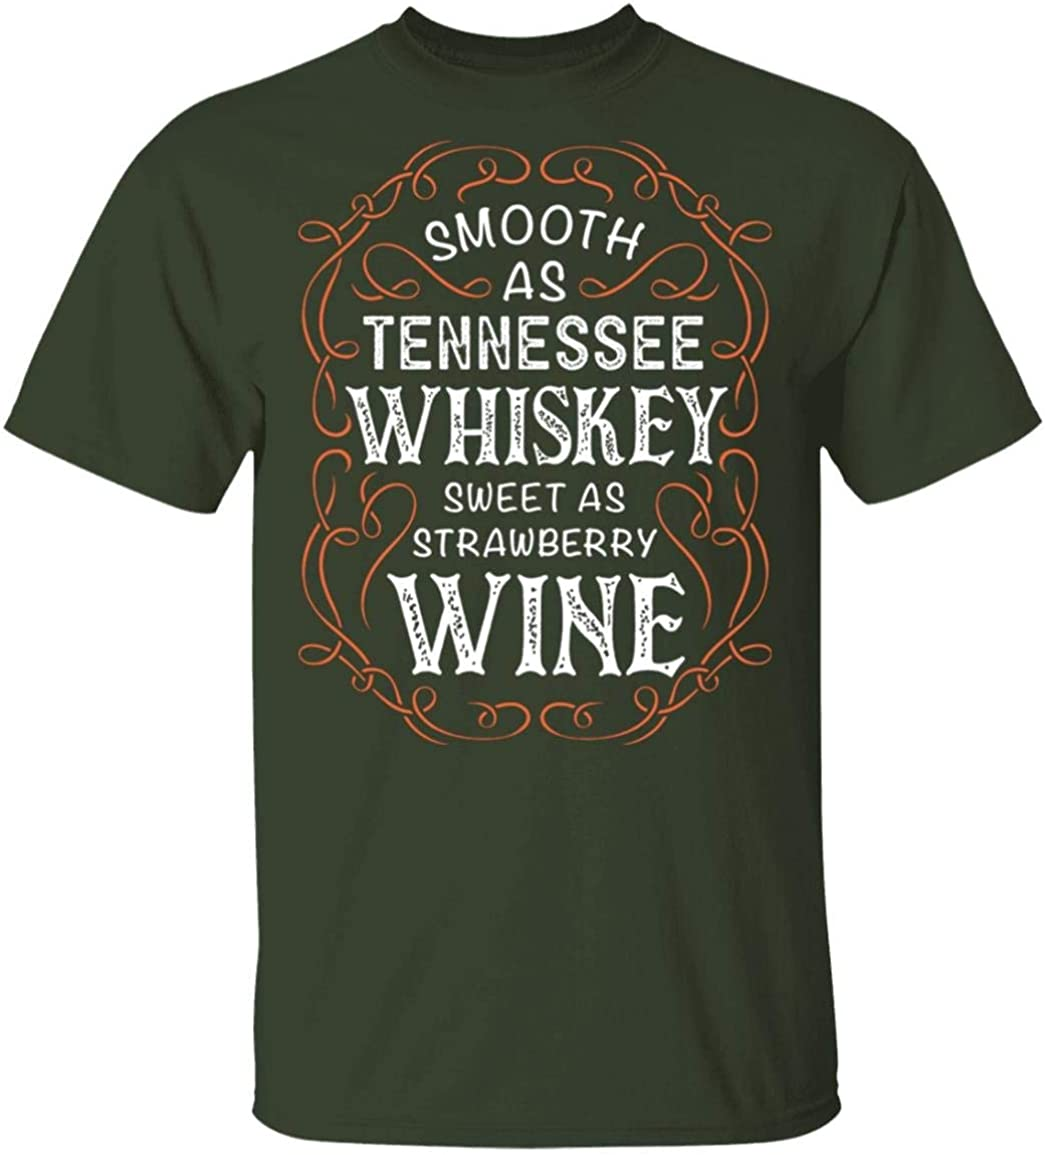 Smooth As Tennessee Whiskey Sweet As Strawberry Wine Retro Vintage Drinking T-Shirt